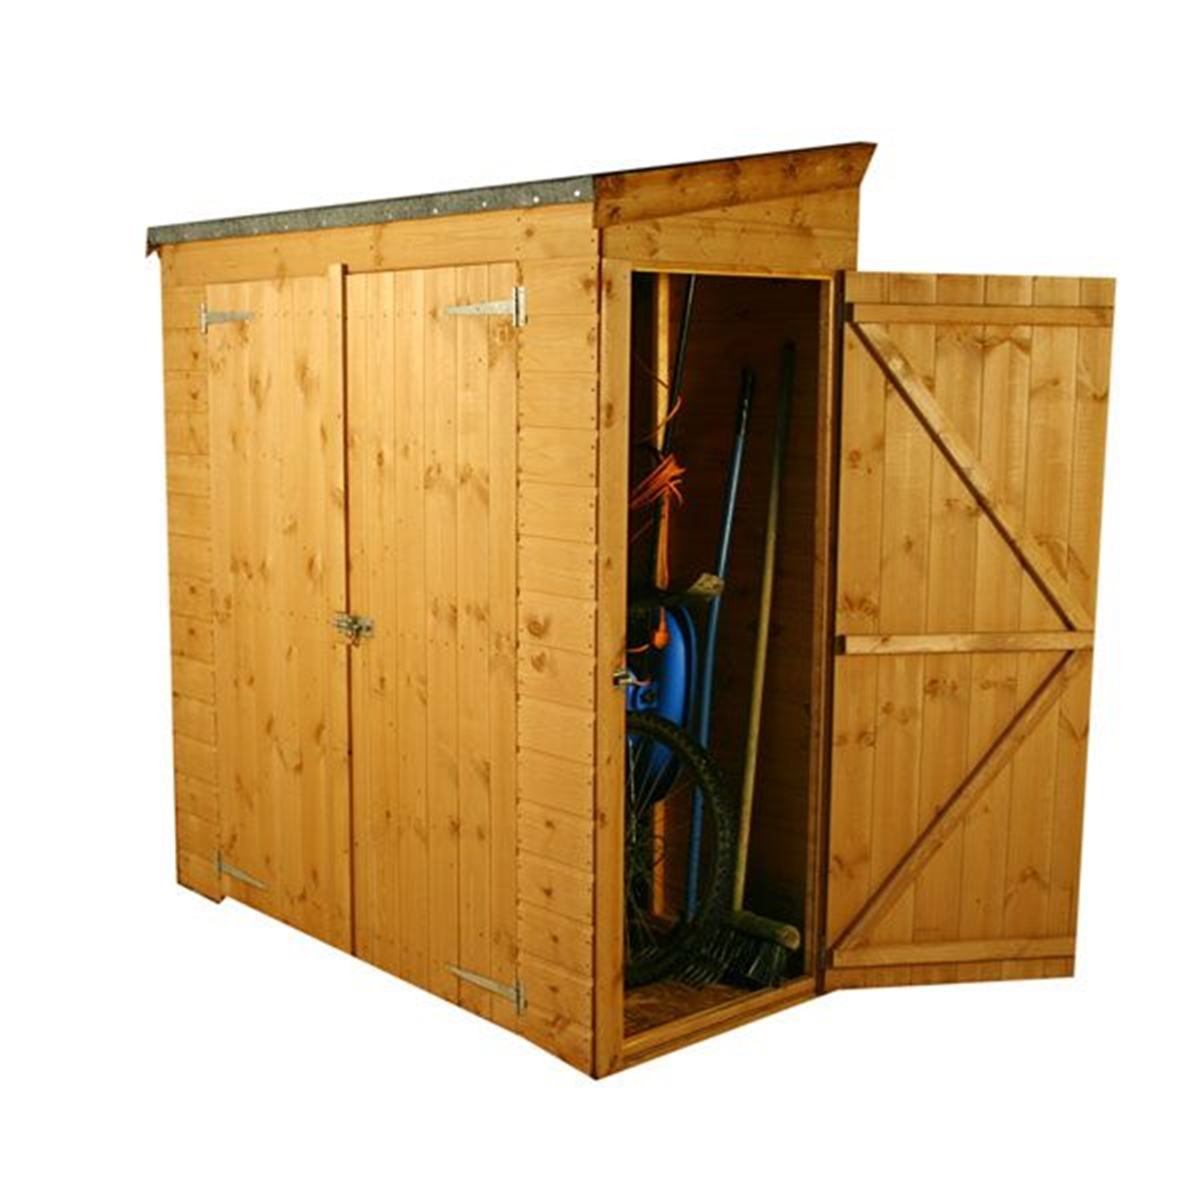 6 X 2 6 Tongue And Groove Pent Shed With Double Doors And